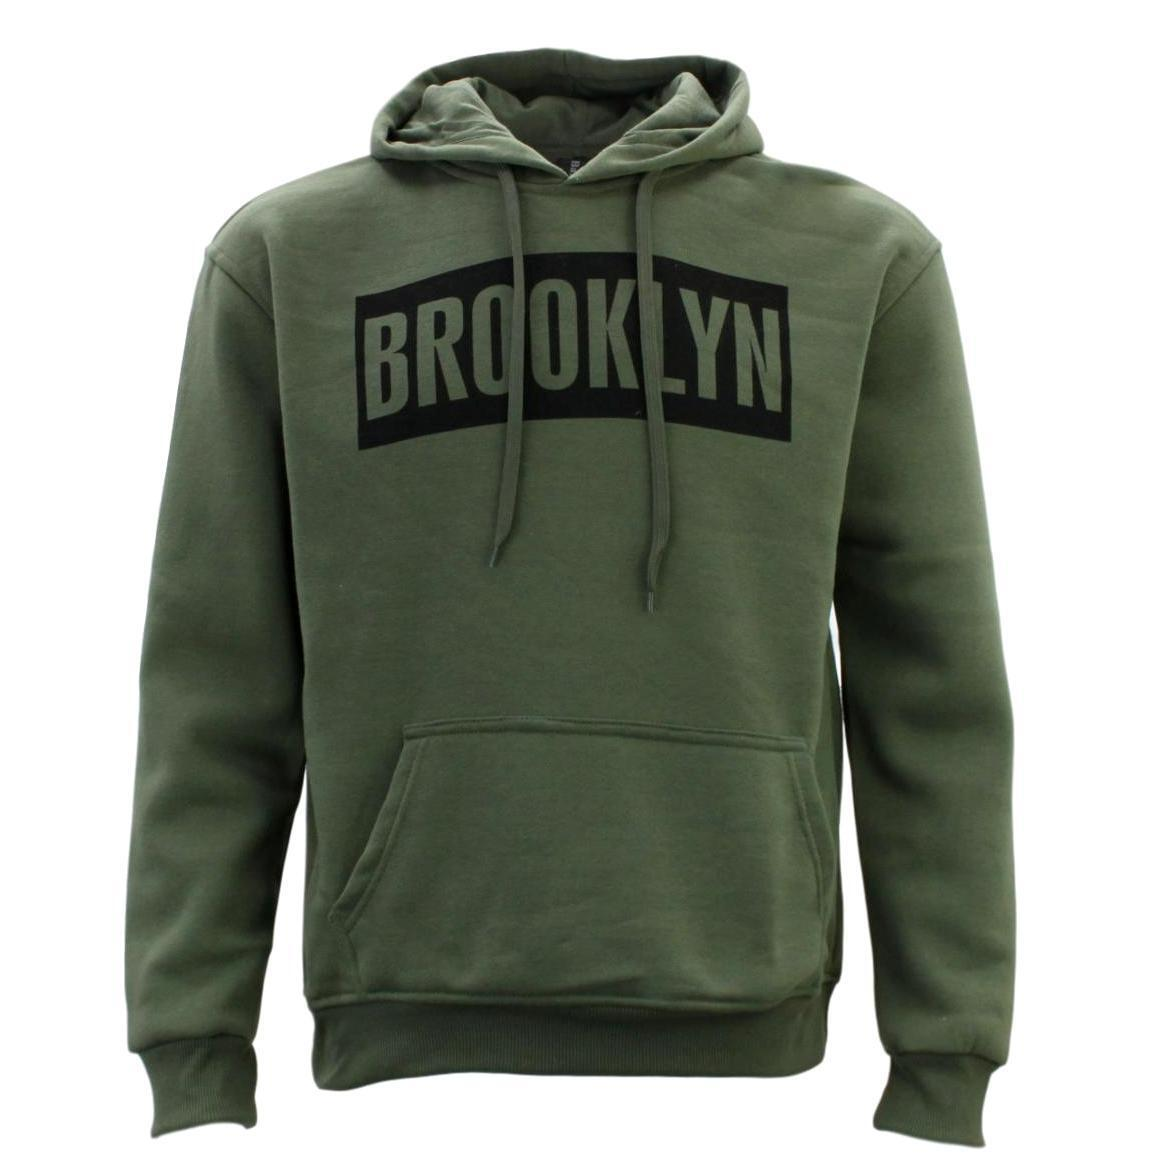 Adult-Men-039-s-Unisex-Hoodie-Hooded-Jumper-Pullover-Women-039-s-Sweater-BROOKLYN thumbnail 27